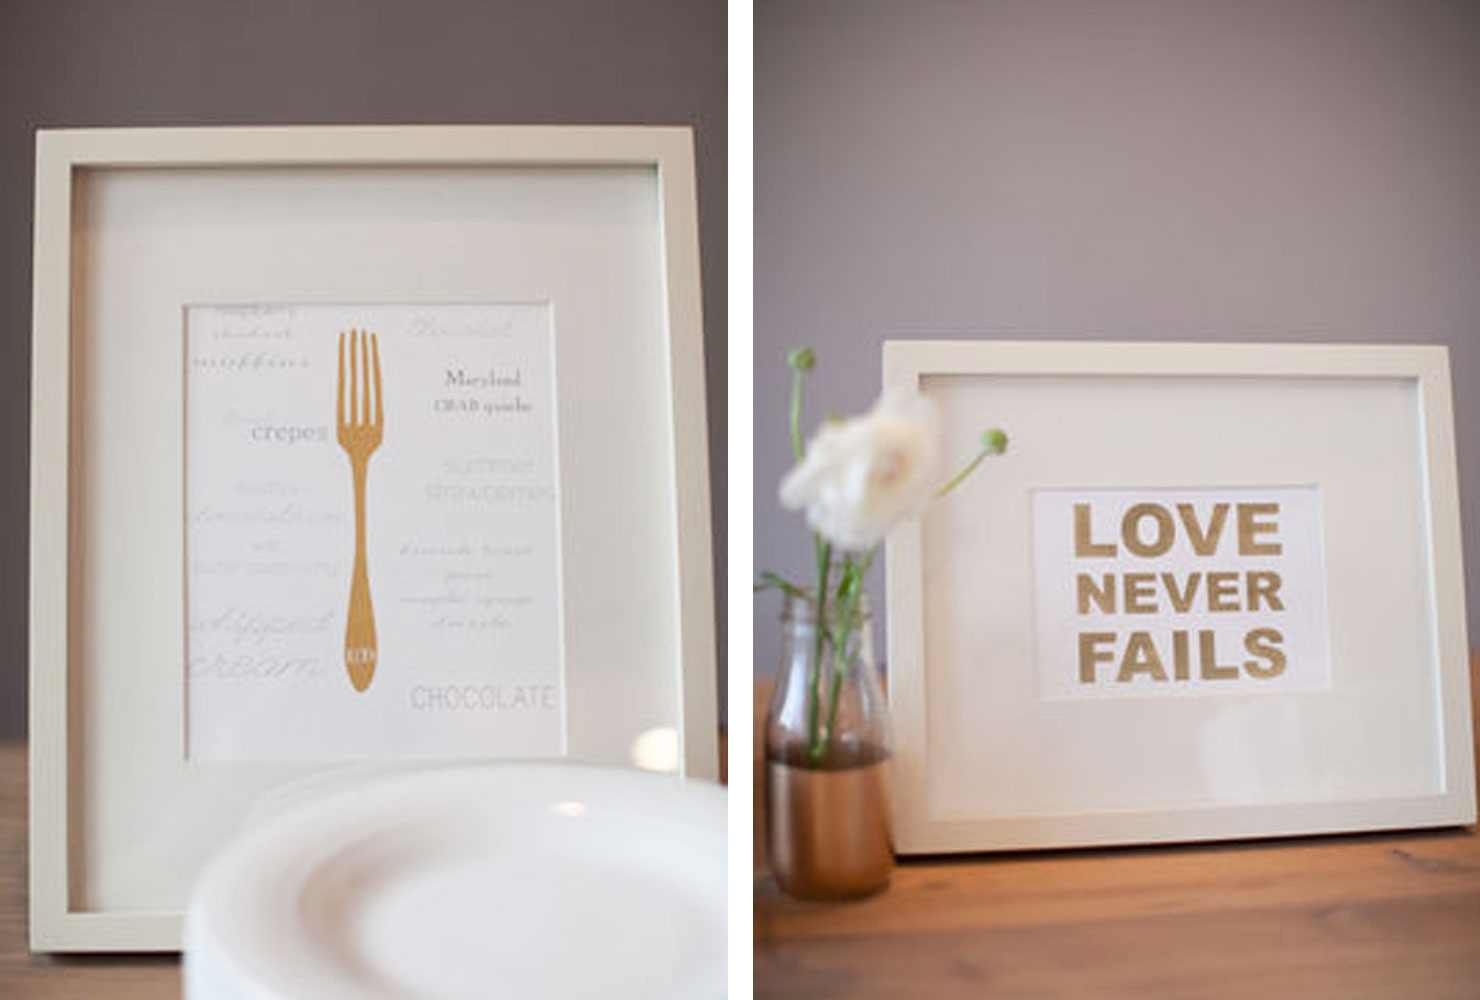 White frames with gold signage